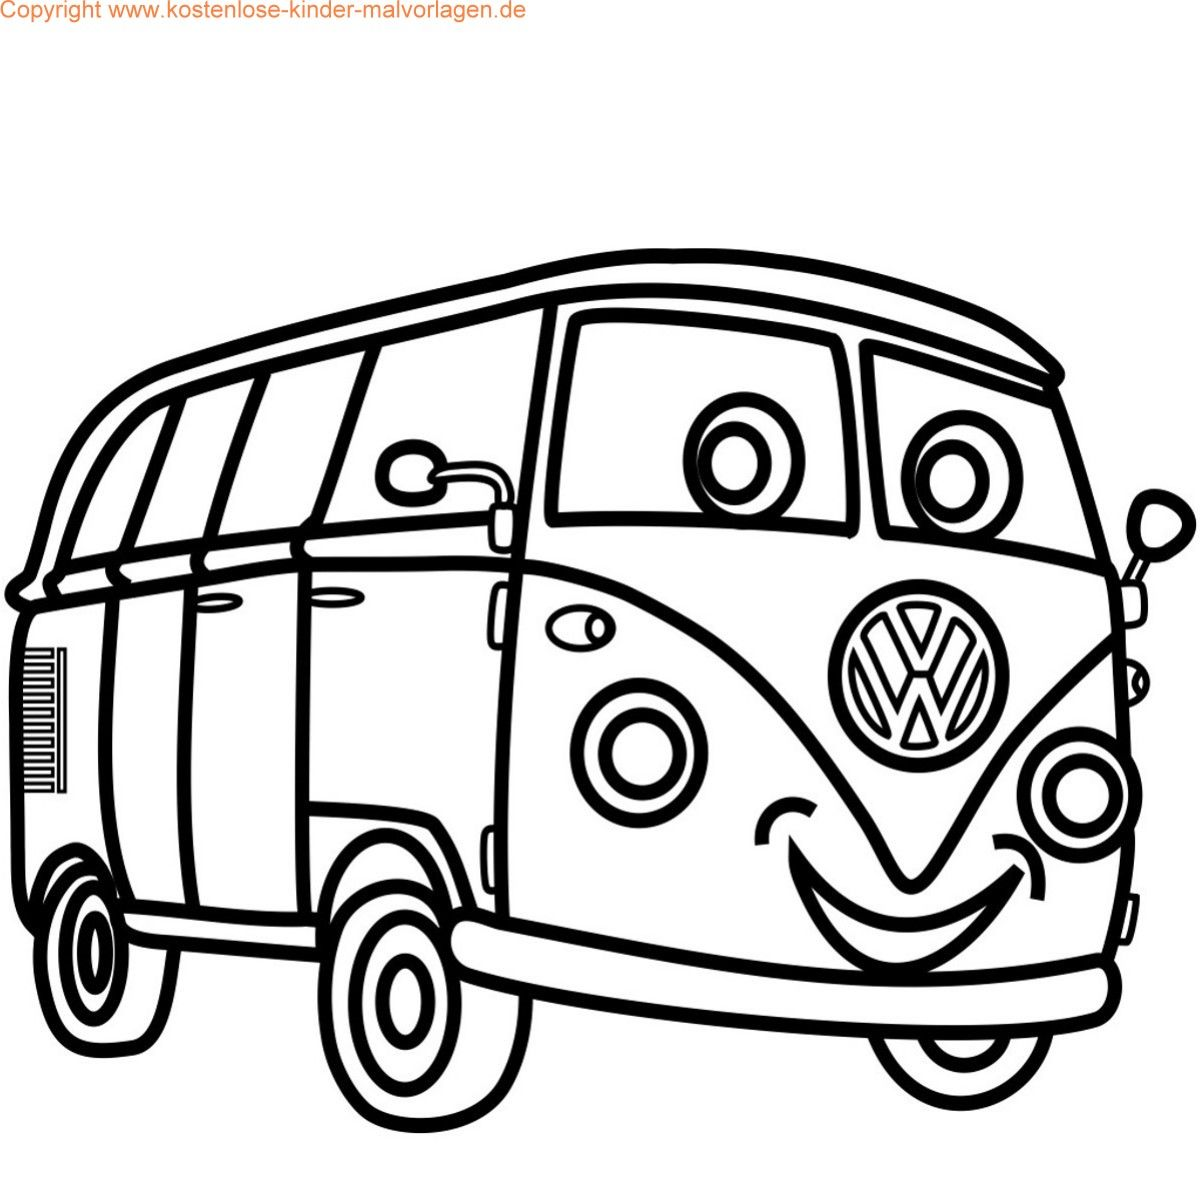 Pin Kostenlose Auto Malvorlage Ausmalbild Car Coloring Pages On ...